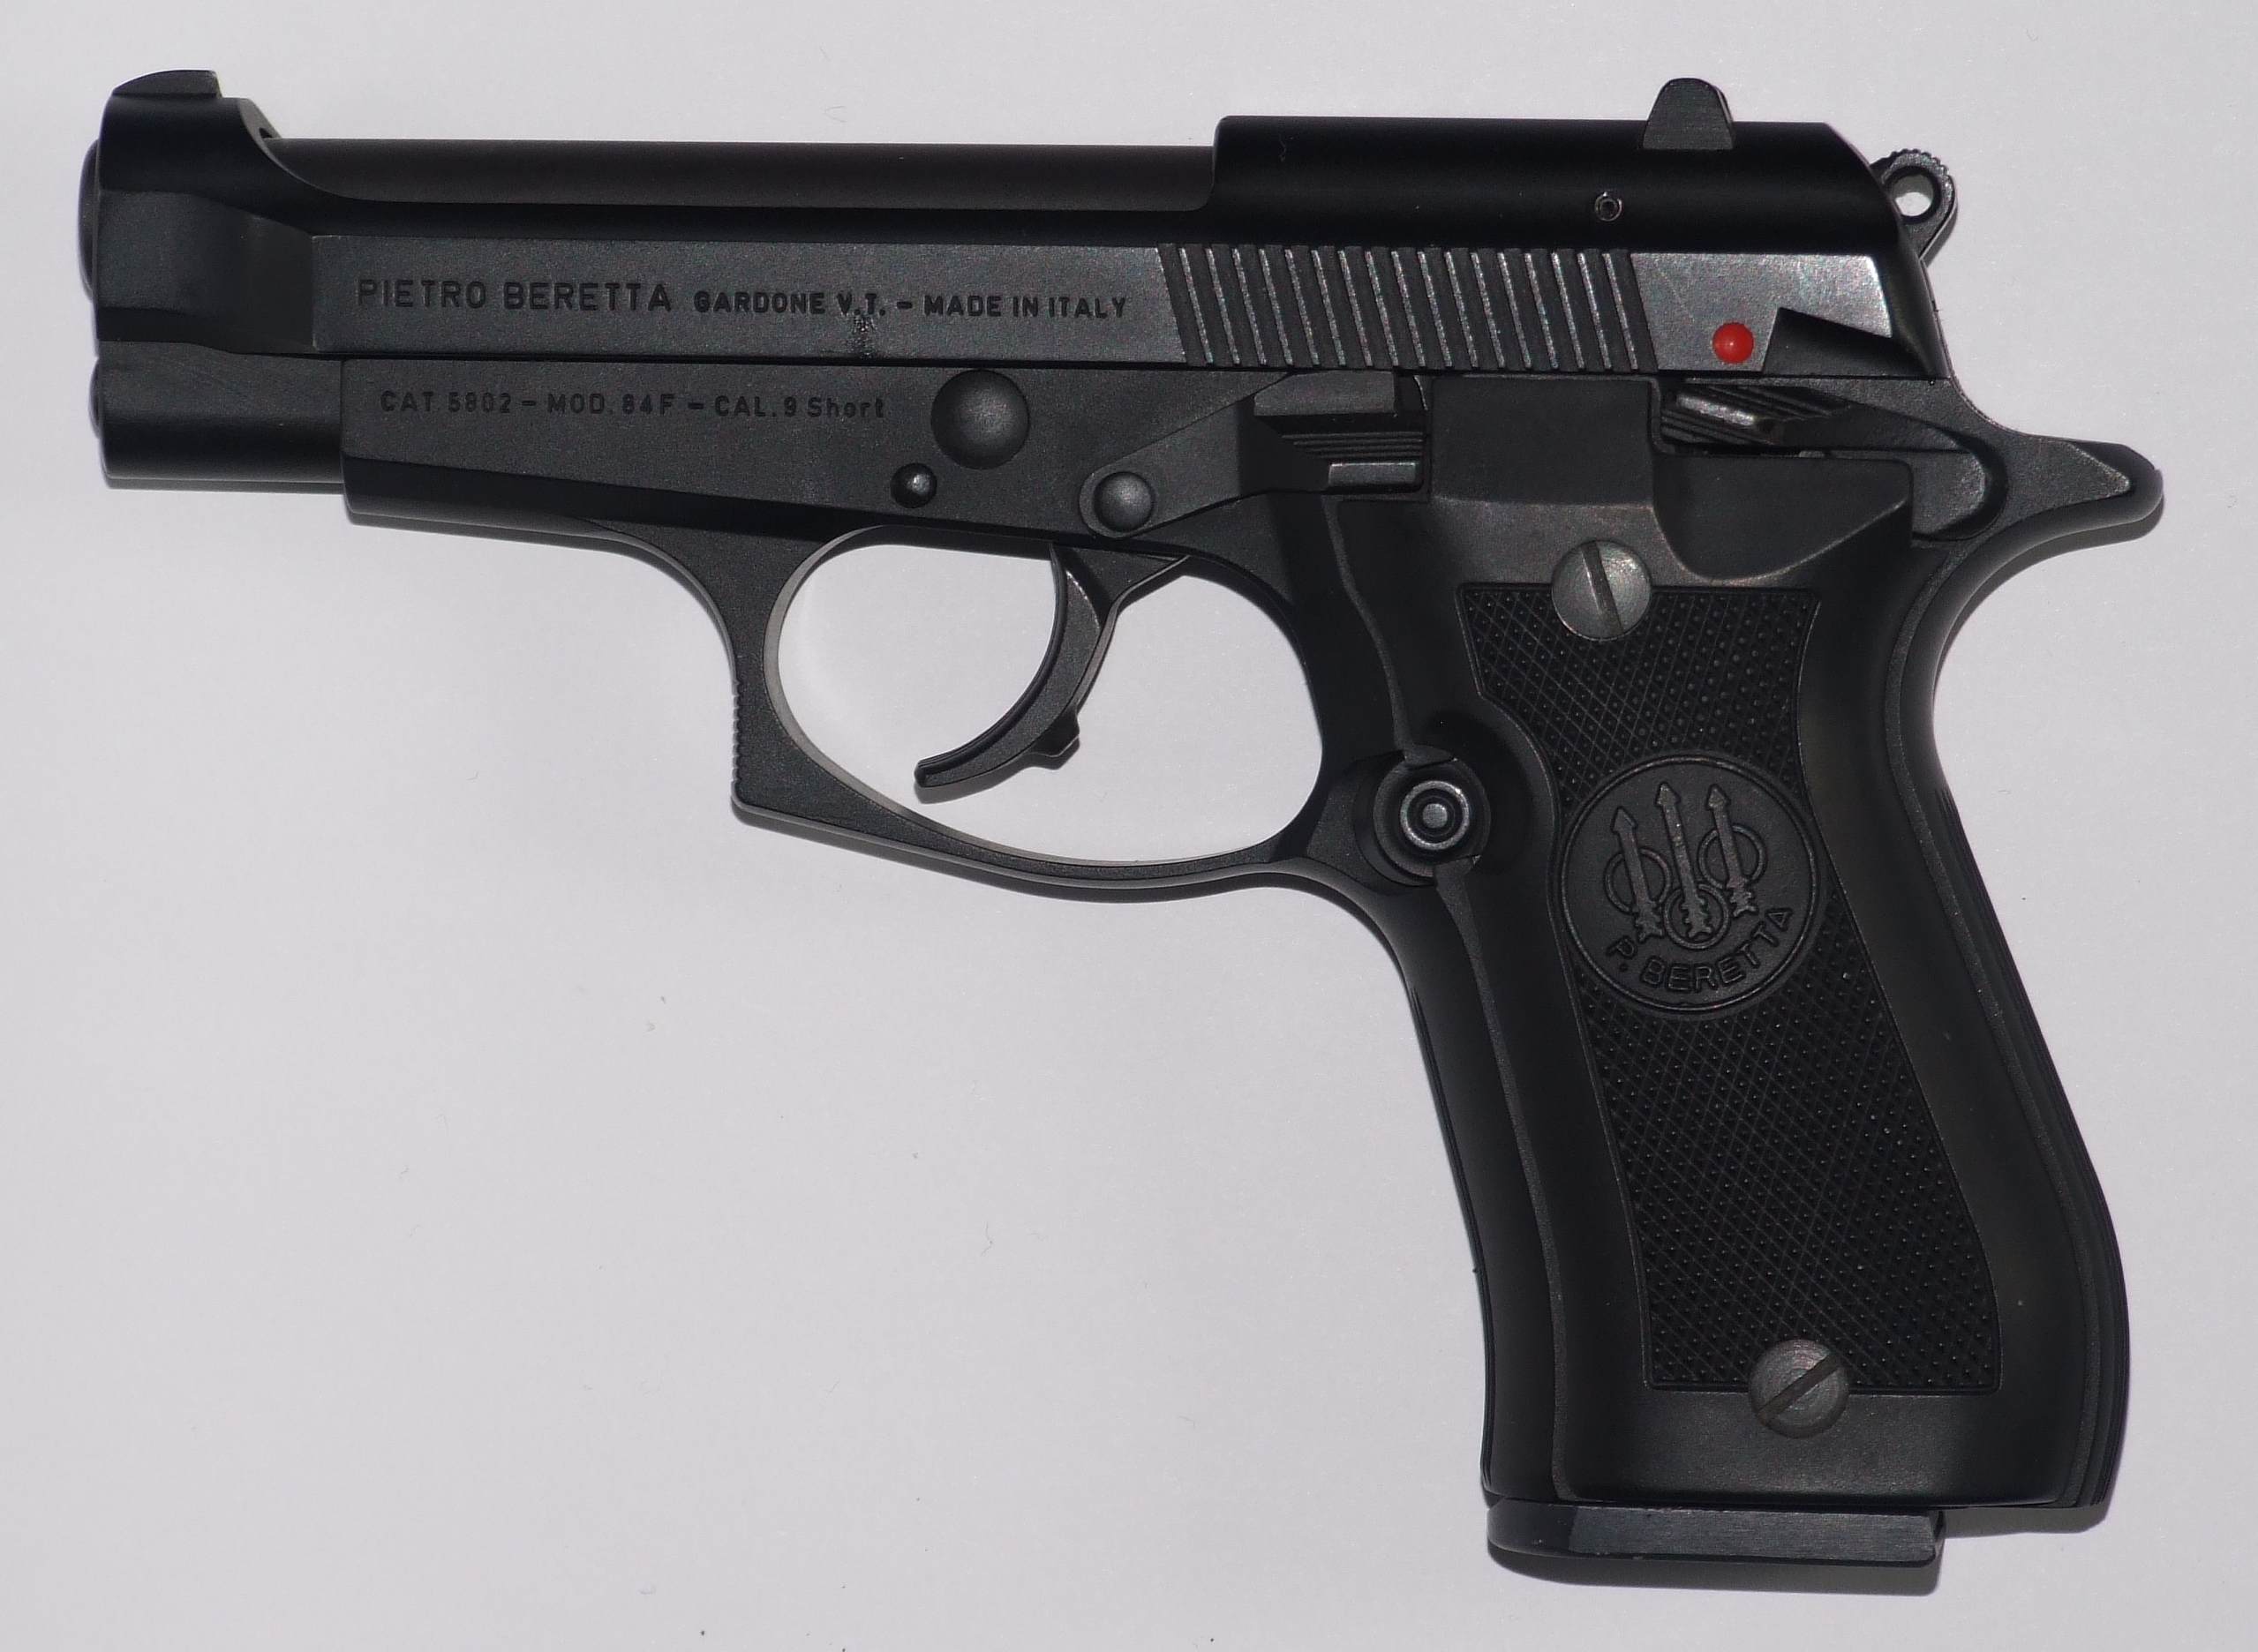 https://upload.wikimedia.org/wikipedia/commons/b/b5/Beretta_84F-JH01.jpg